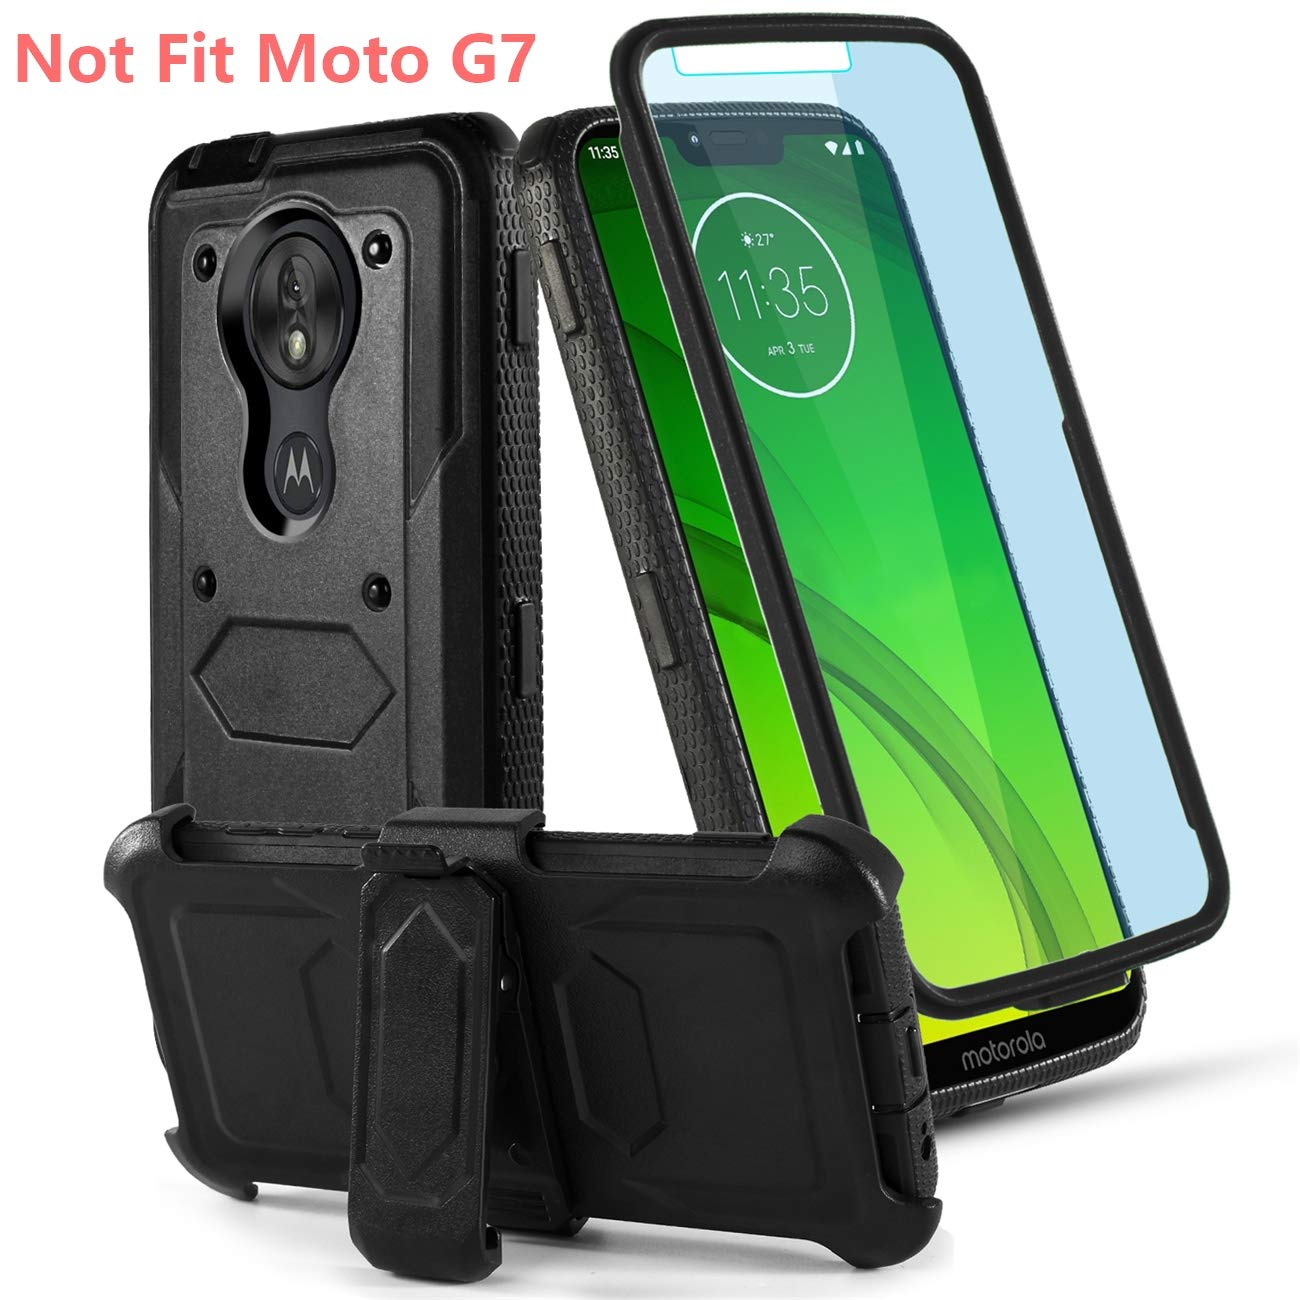 Funda Para Moto G7 Power Con Pie Toyouu (7pz691ls)